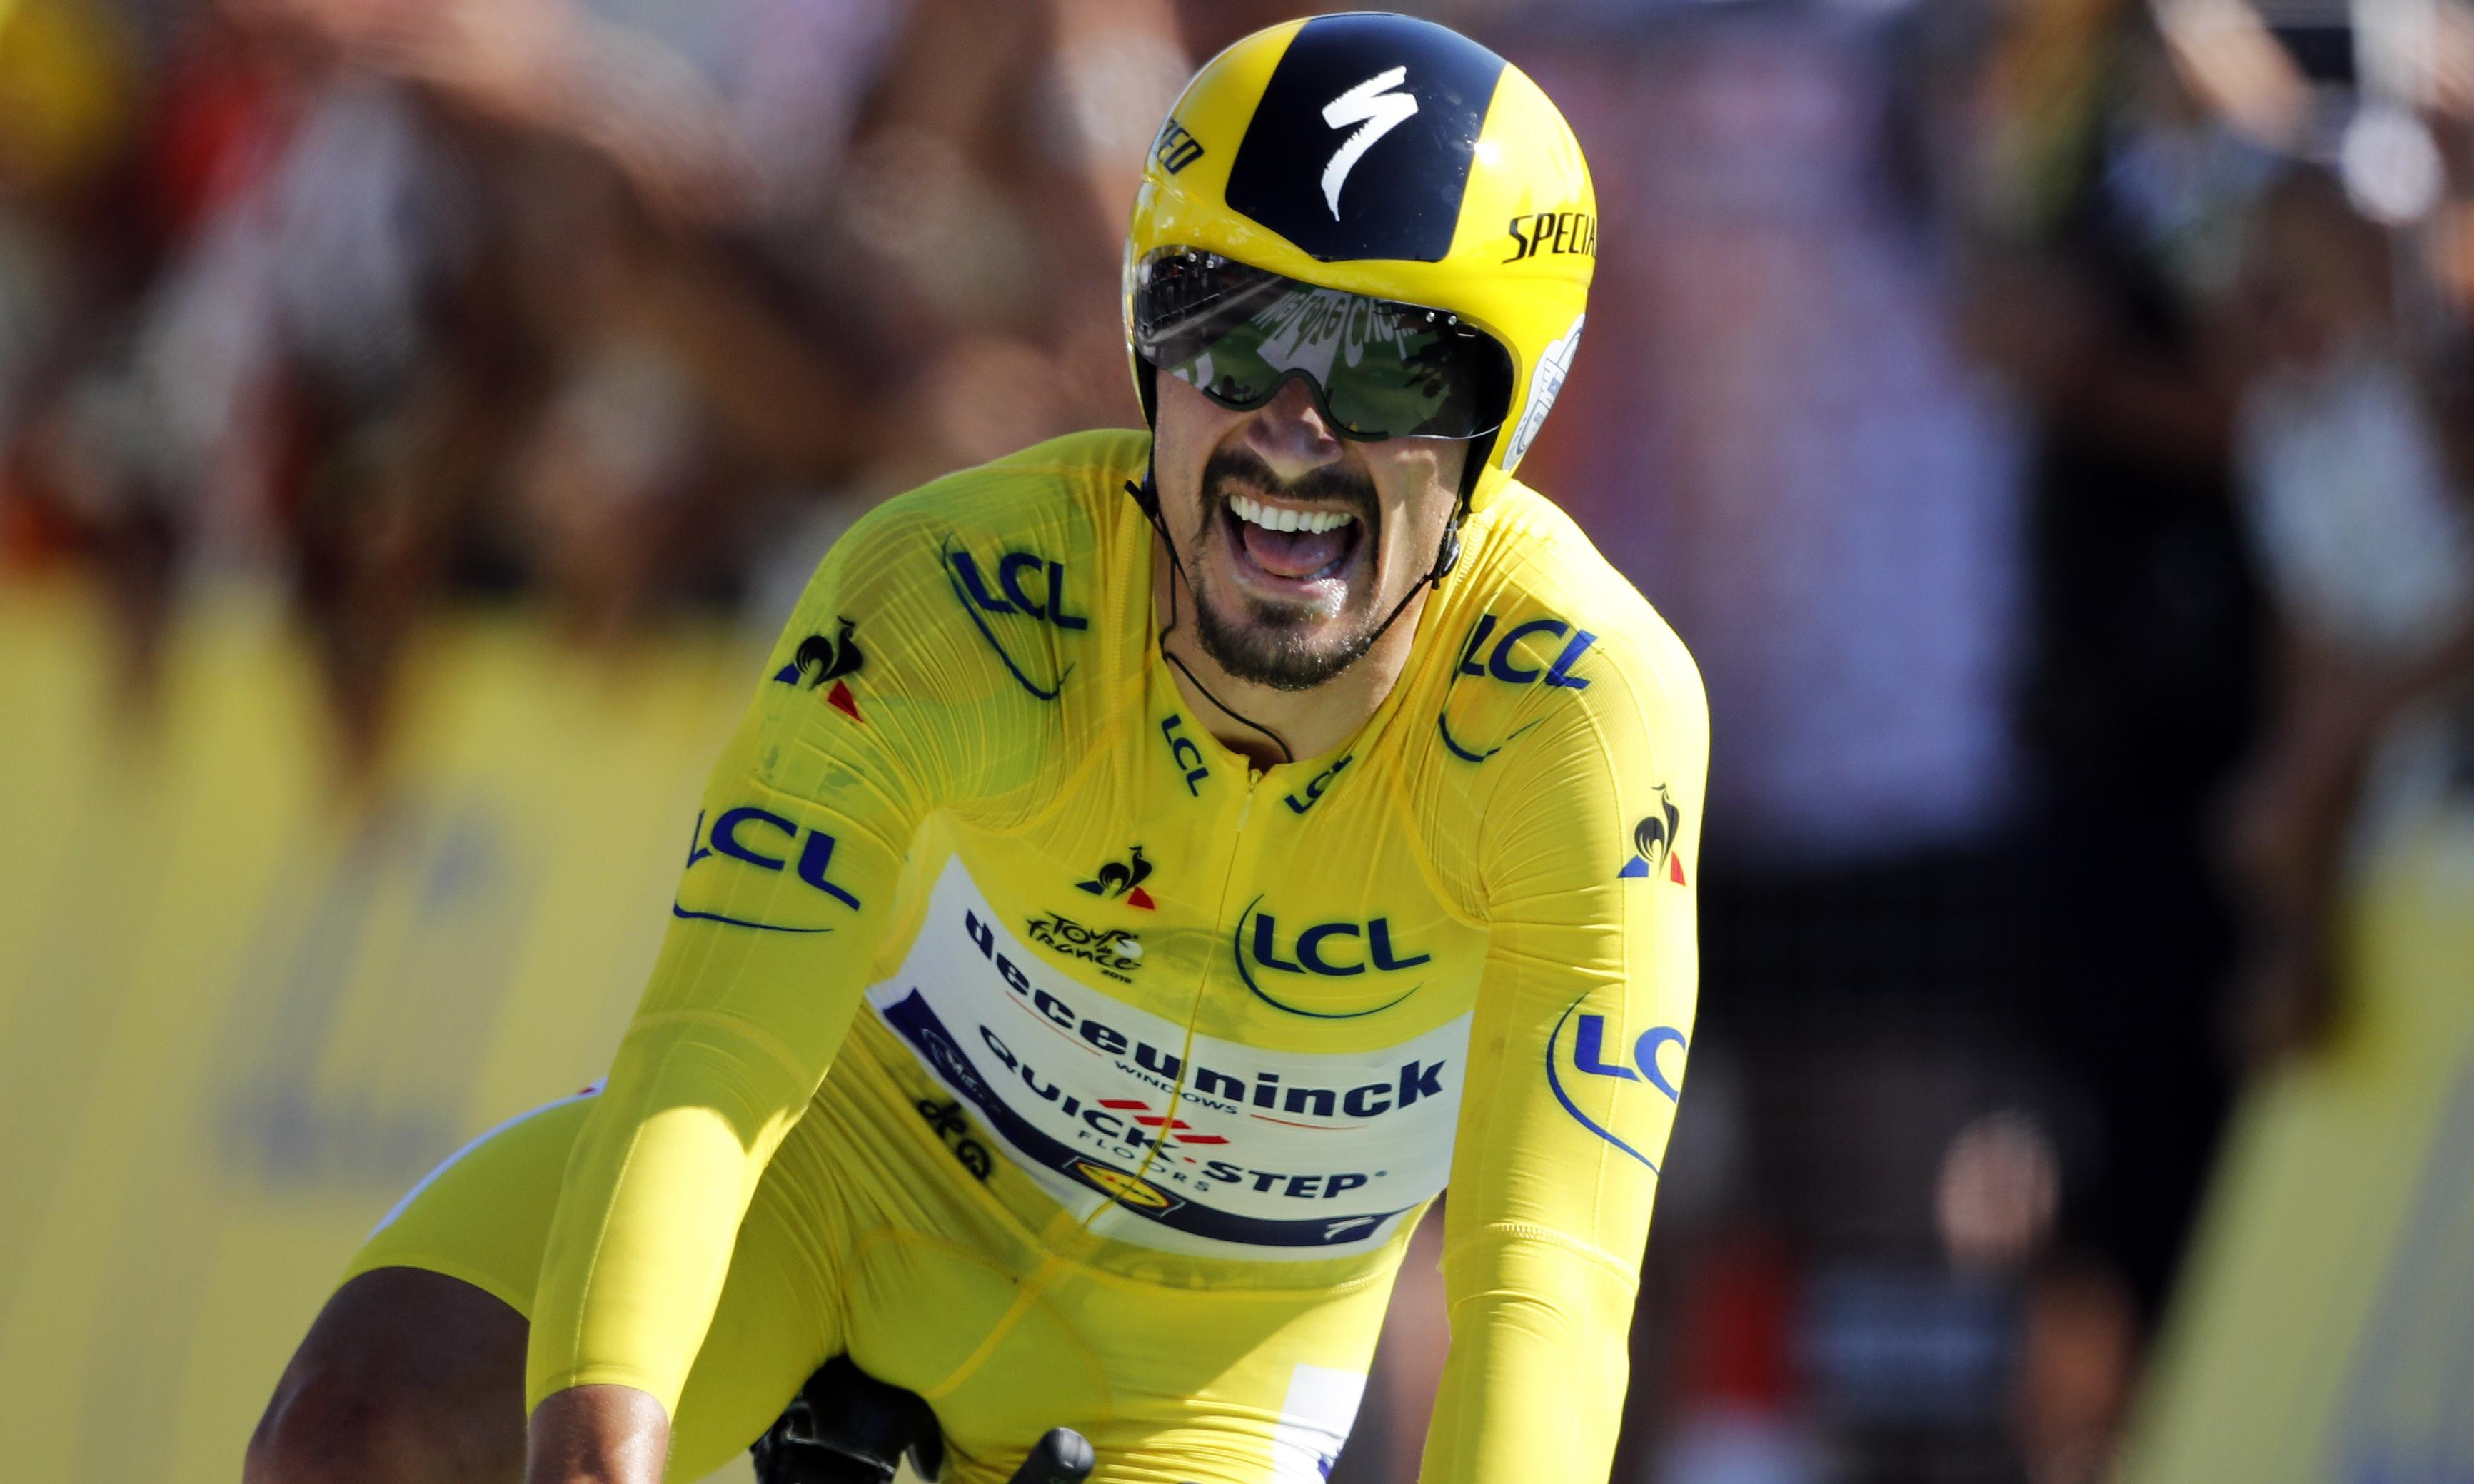 Alaphilippe extends Tour de France lead over Thomas with stunning time-trial win